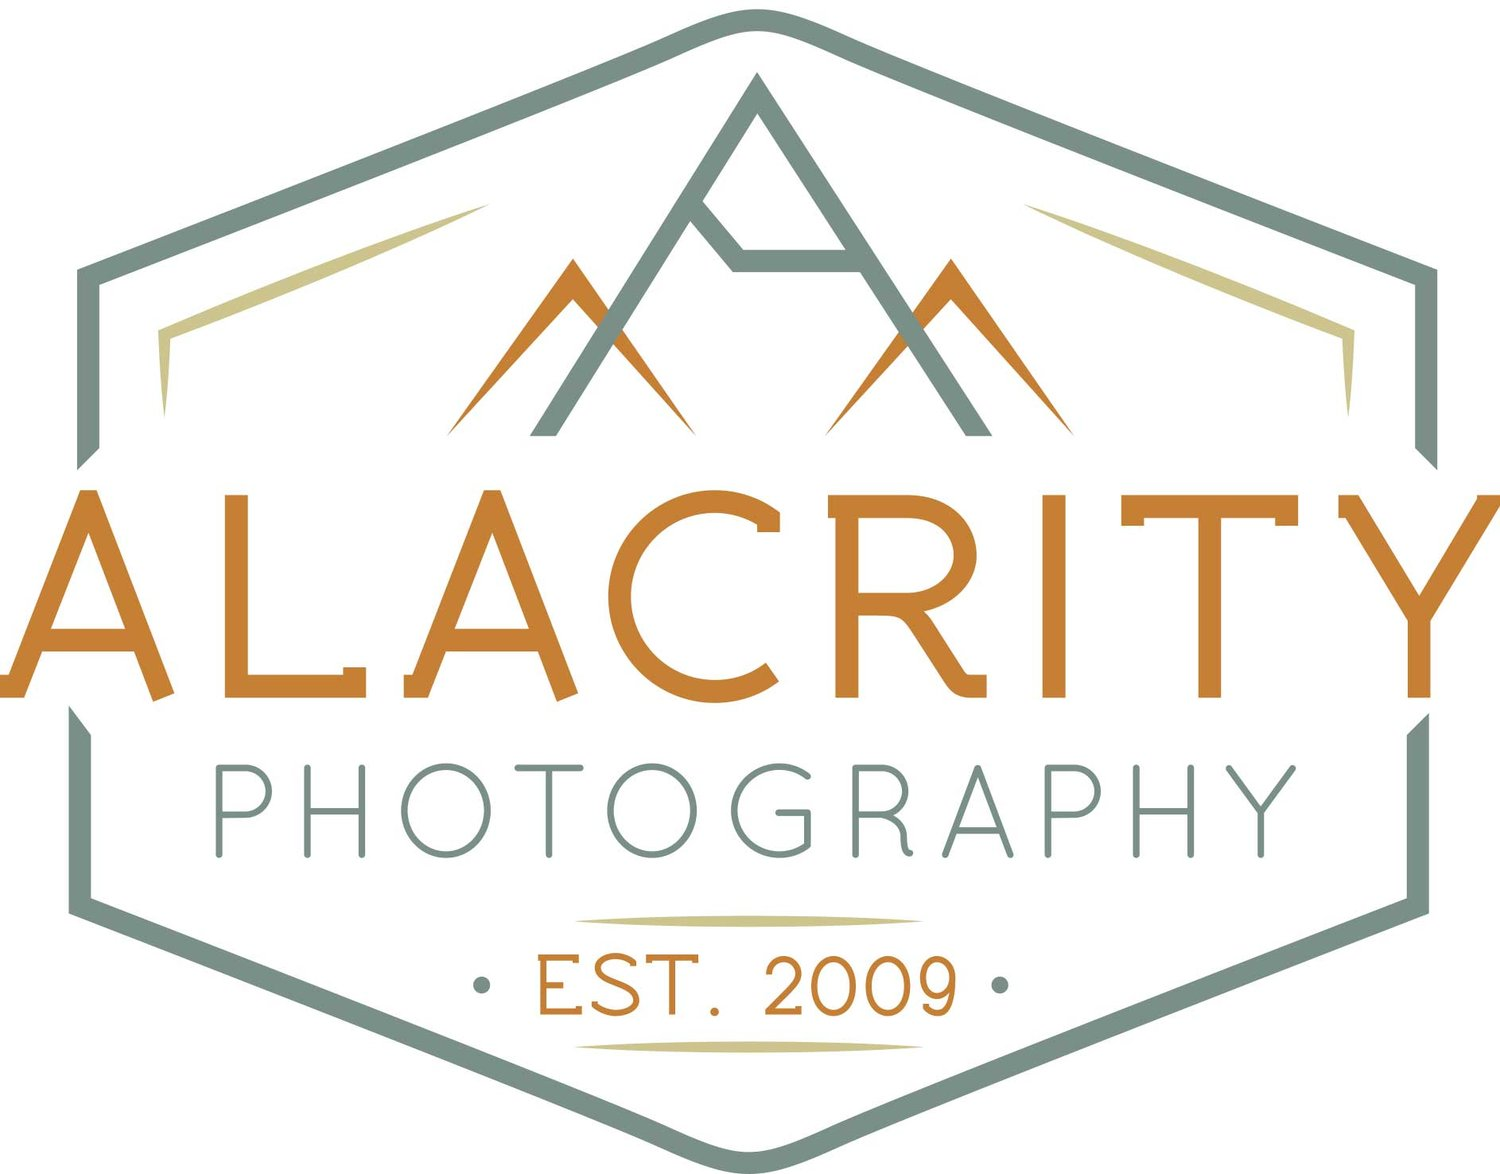 Alacrity Photography